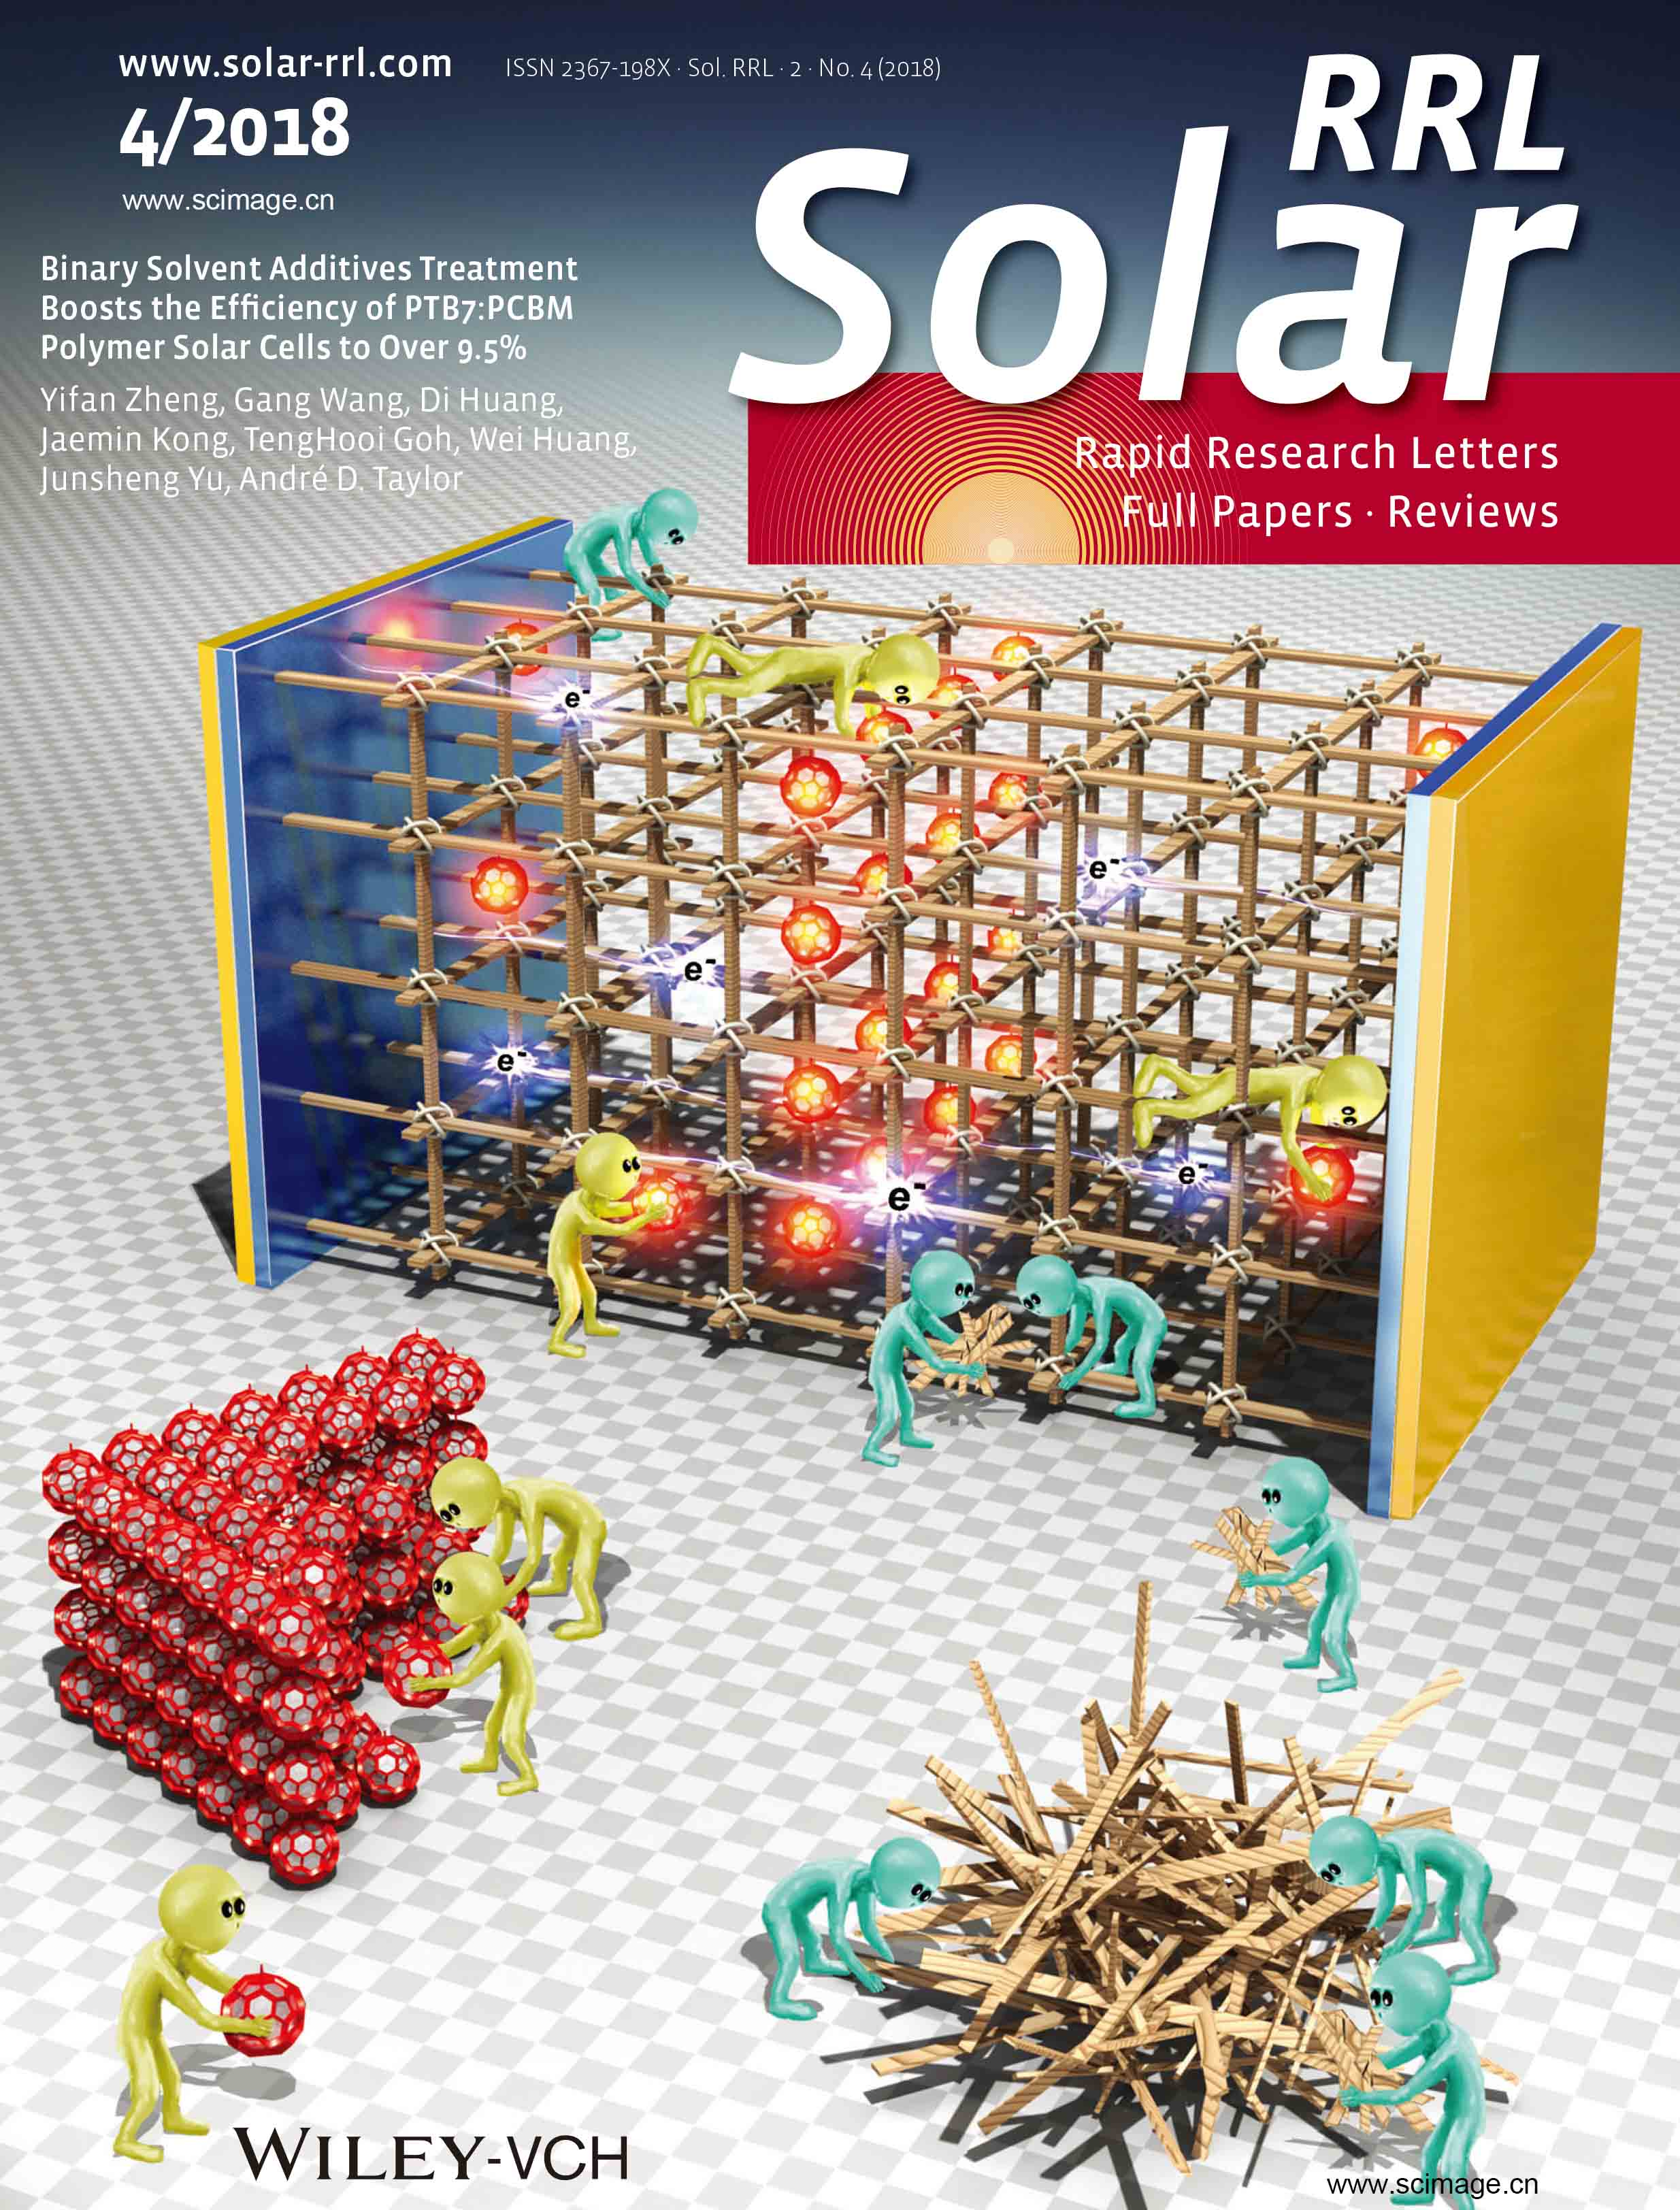 Binary Solvent Additives Treatment Boosts the Efficiency of PTB7:PCBM Polymer Solar Cells to Over 9.5%